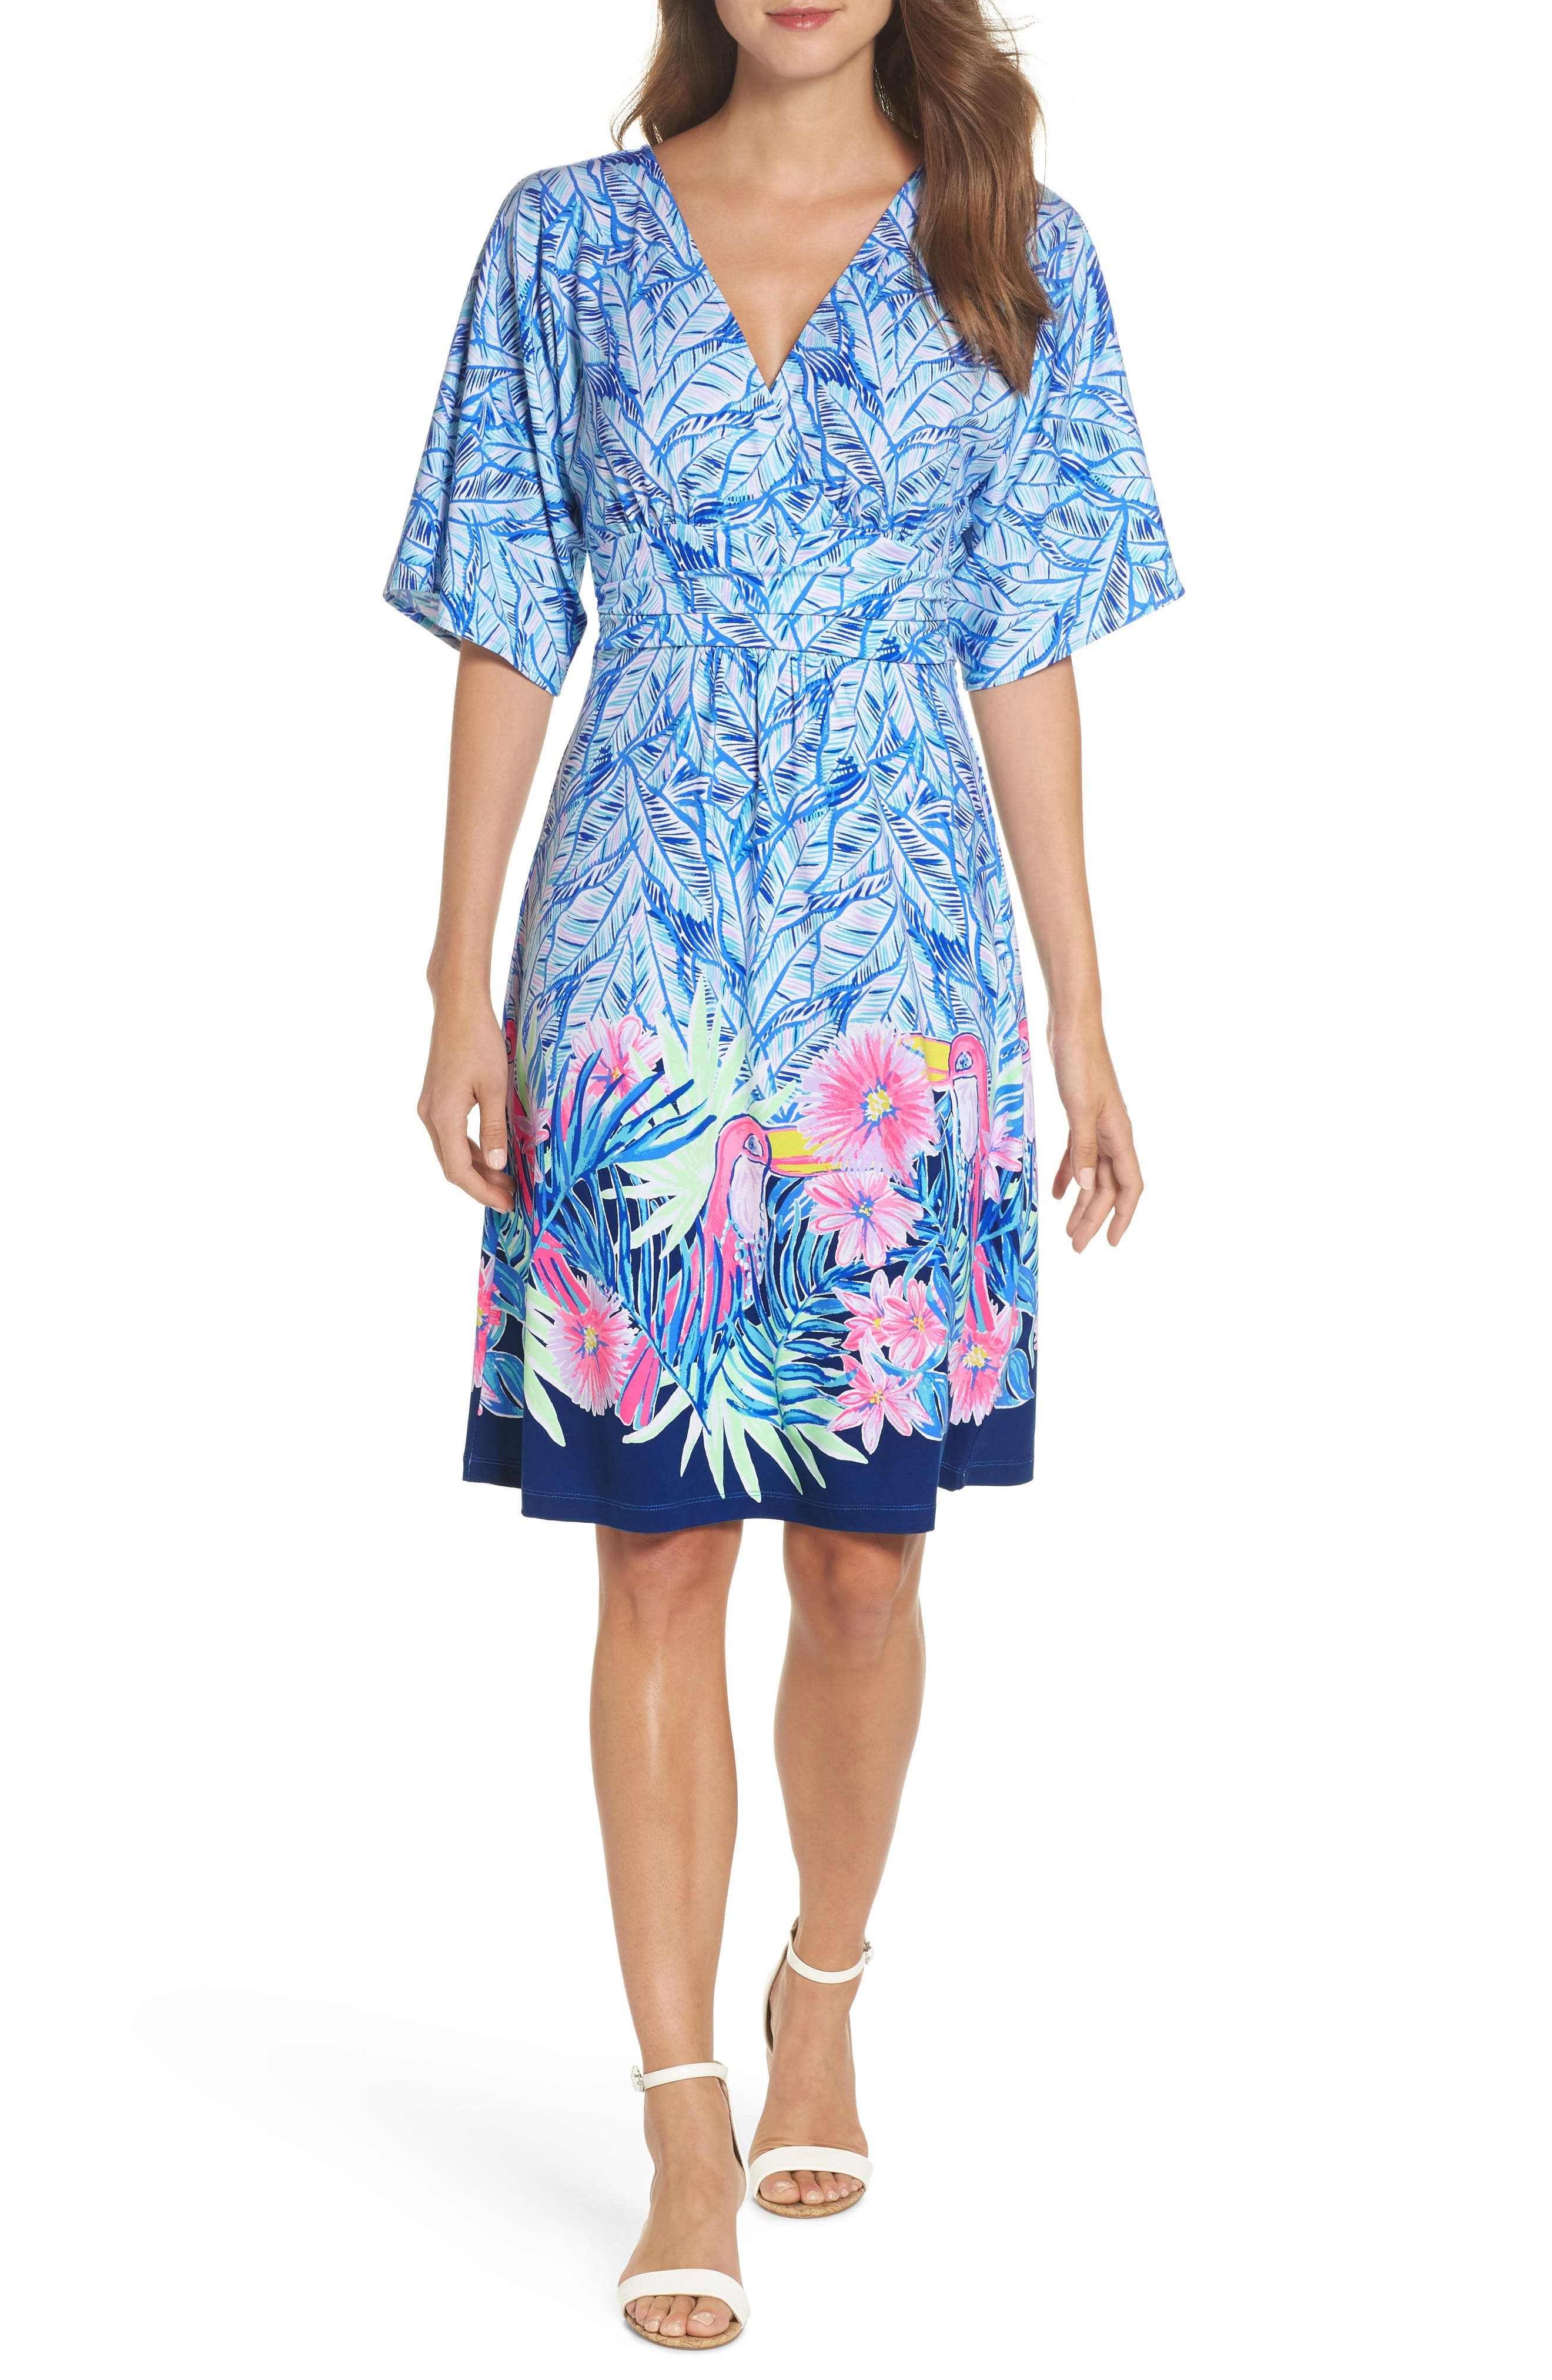 Parigi Print Dress,                             Main thumbnail 1, color,                             420